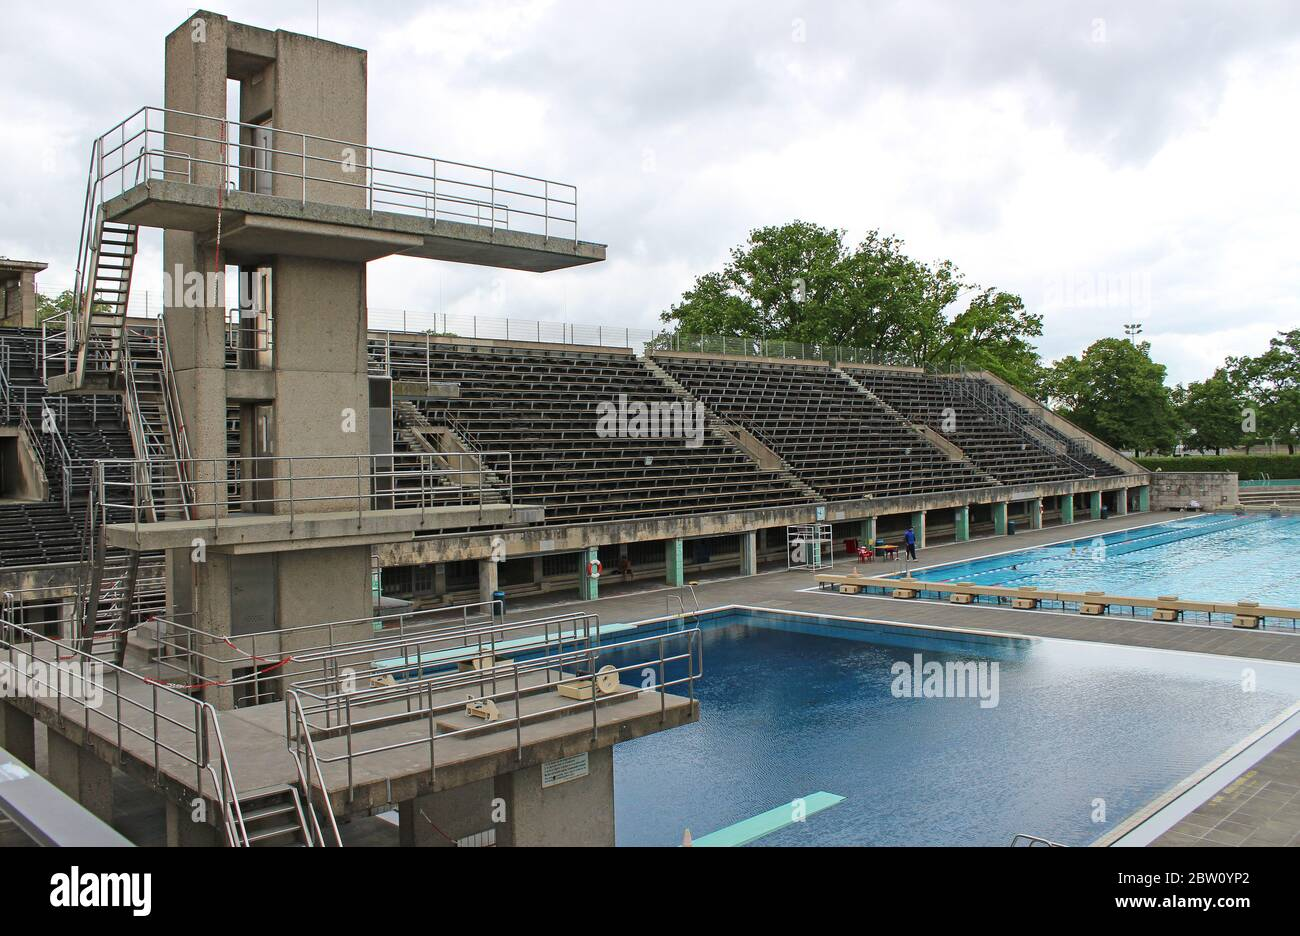 Olympic Swimming Pool Stadium High Resolution Stock Photography And Images Alamy